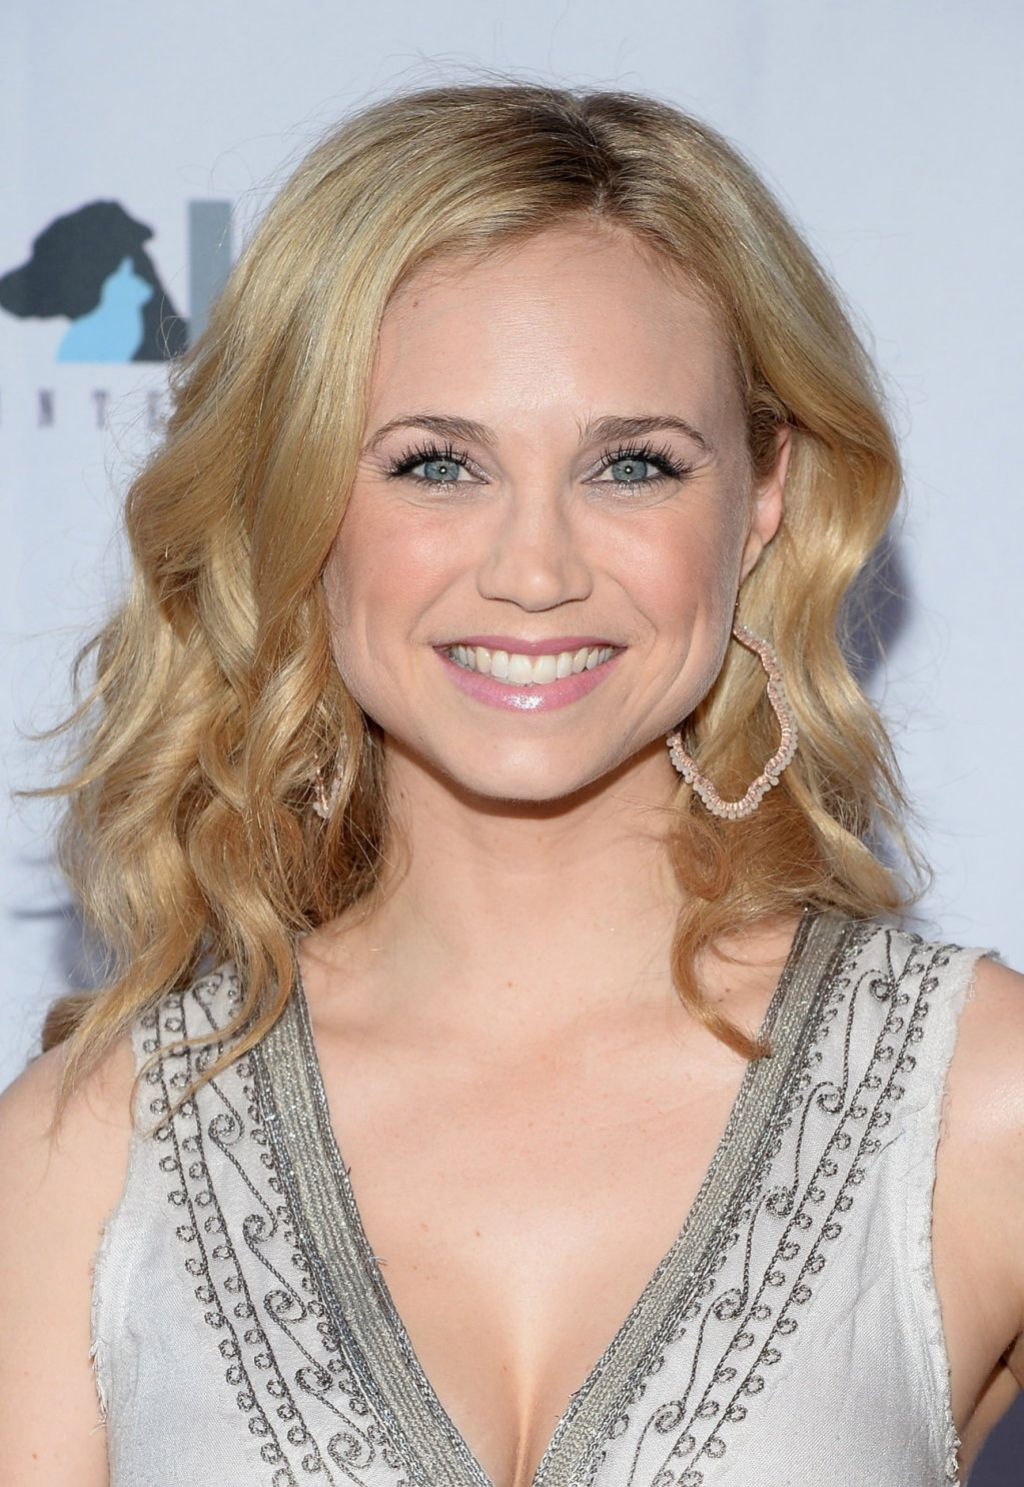 fiona gubelmann employee of the monthfiona gubelmann instagram, fiona gubelmann, fiona gubelmann employee of the month, fiona gubelmann net worth, fiona gubelmann modern family, fiona gubelmann imdb, fiona gubelmann nudography, fiona gubelmann at t, fiona gubelmann bikini, fiona gubelmann bra size